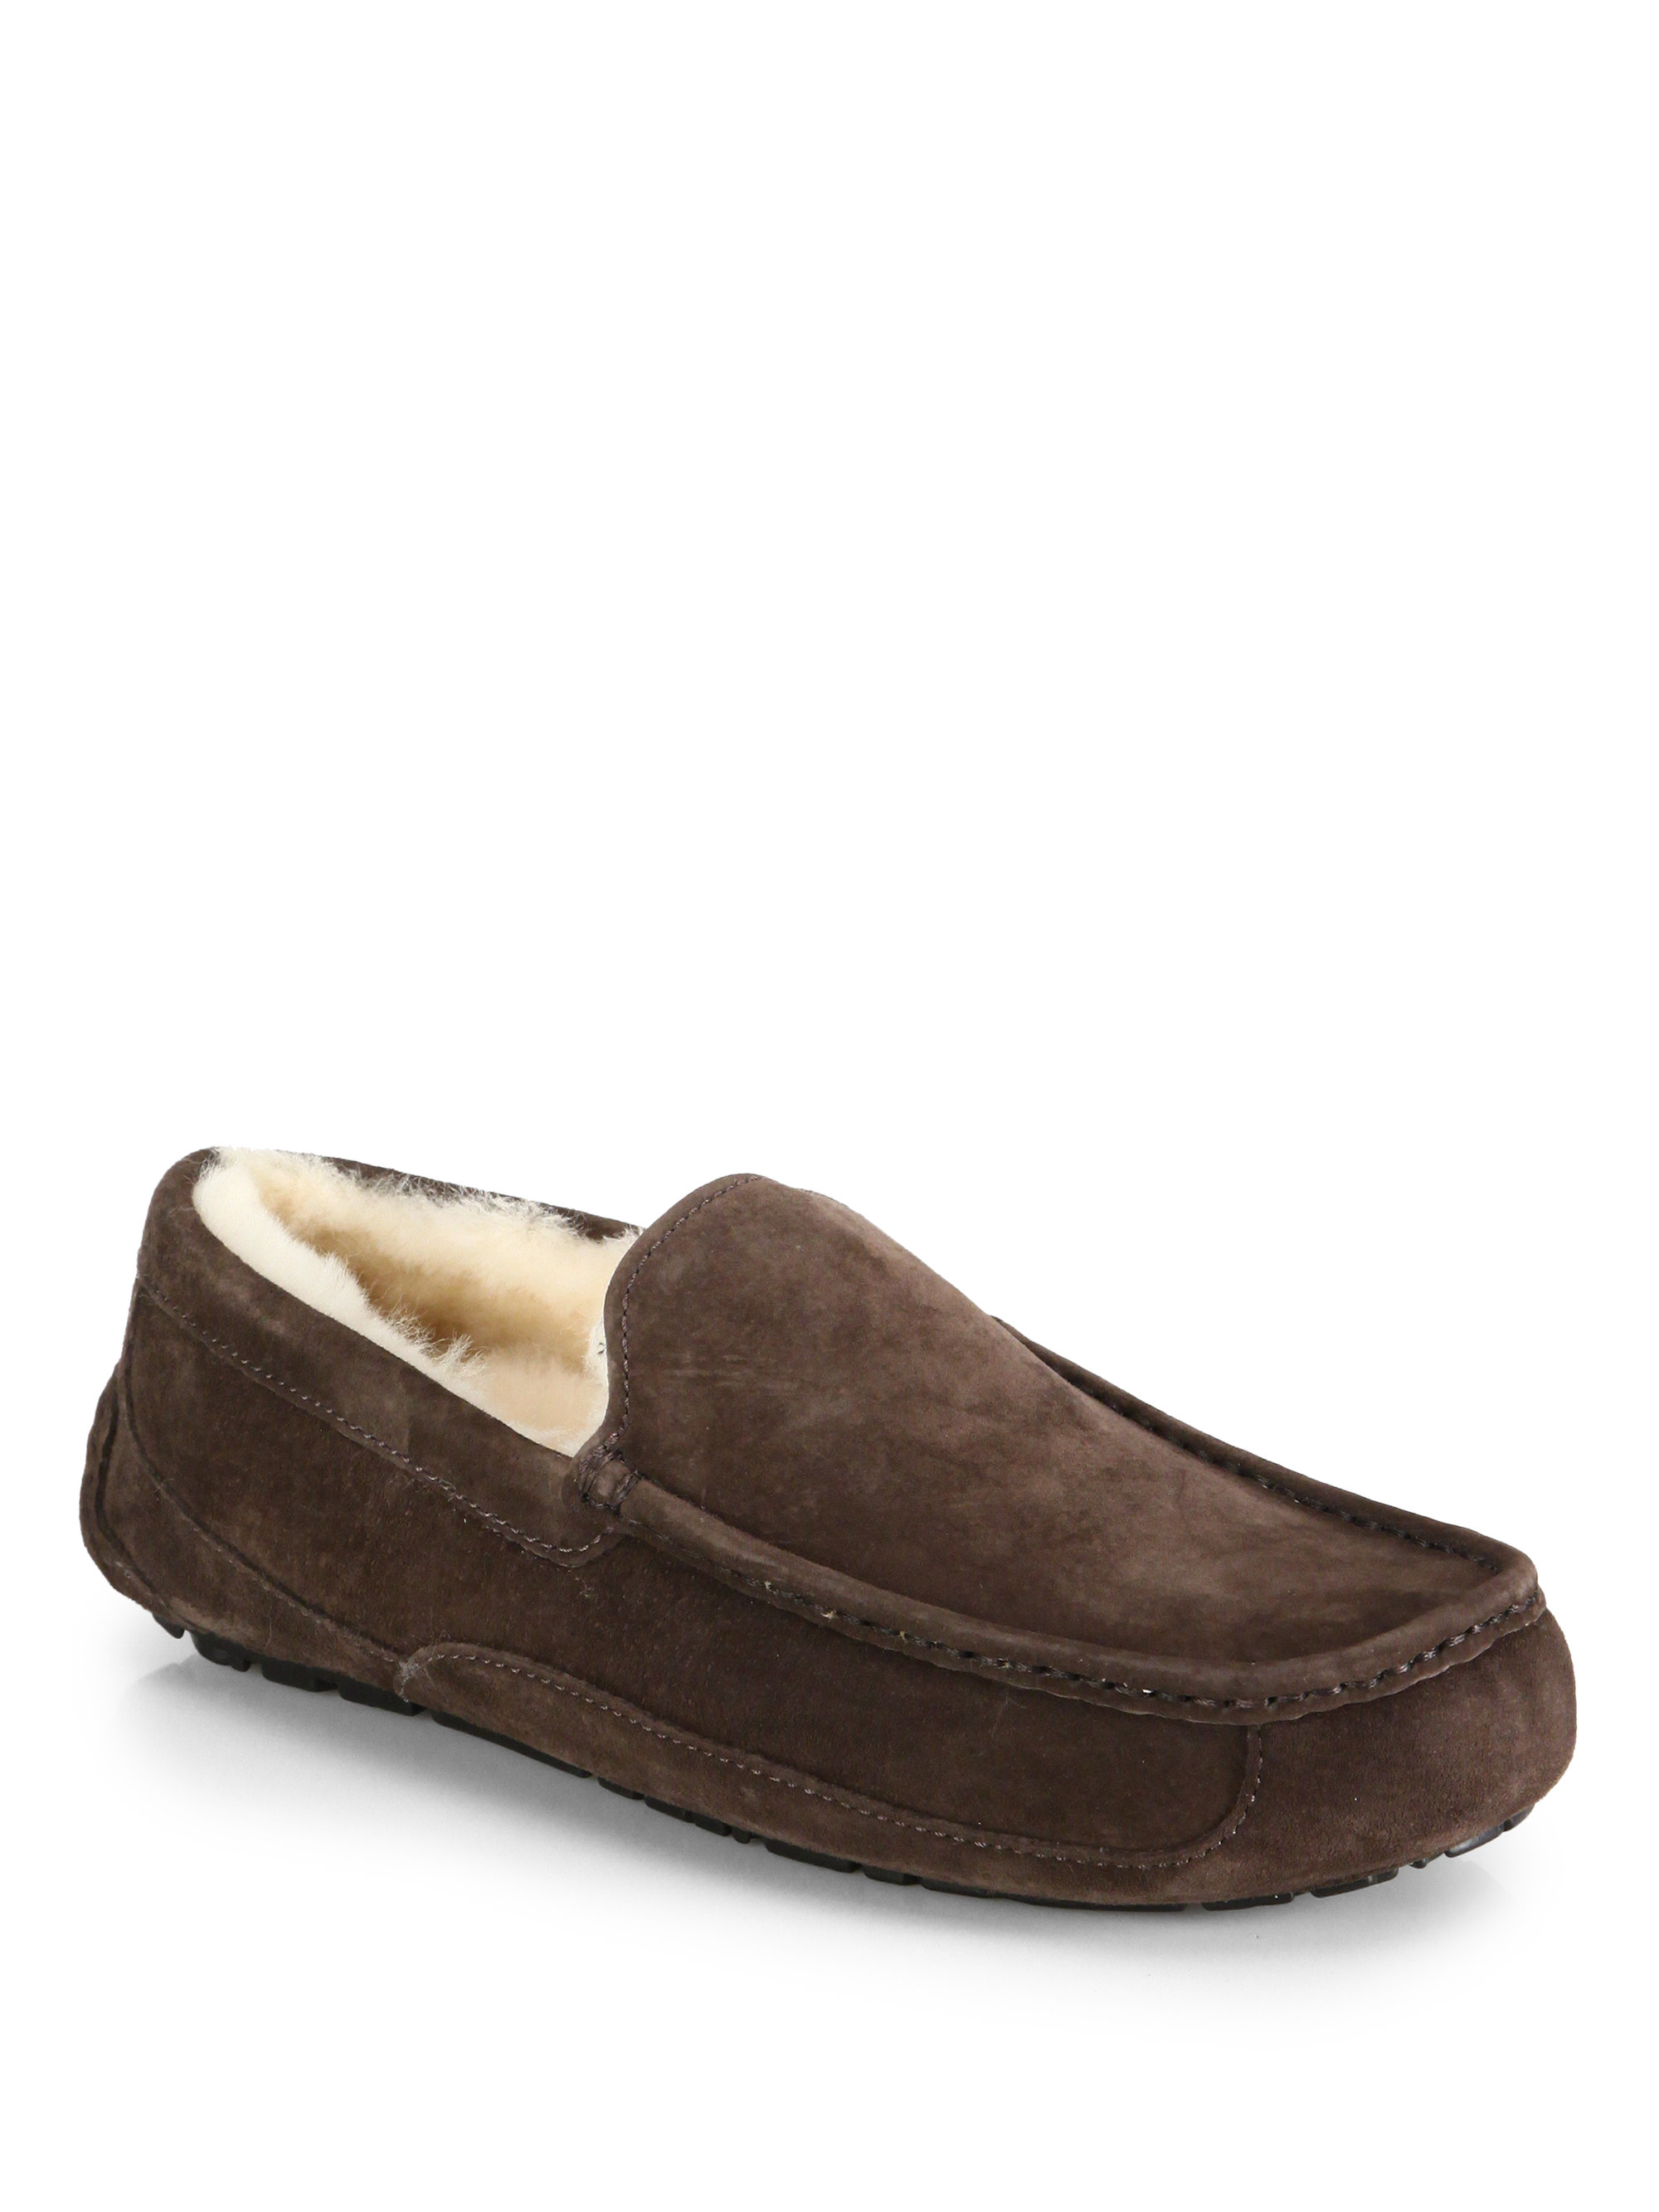 1a0c3ea7833 Ugg Australia Mens Ascot Indoor Outdoor Suede Slippers - cheap ...